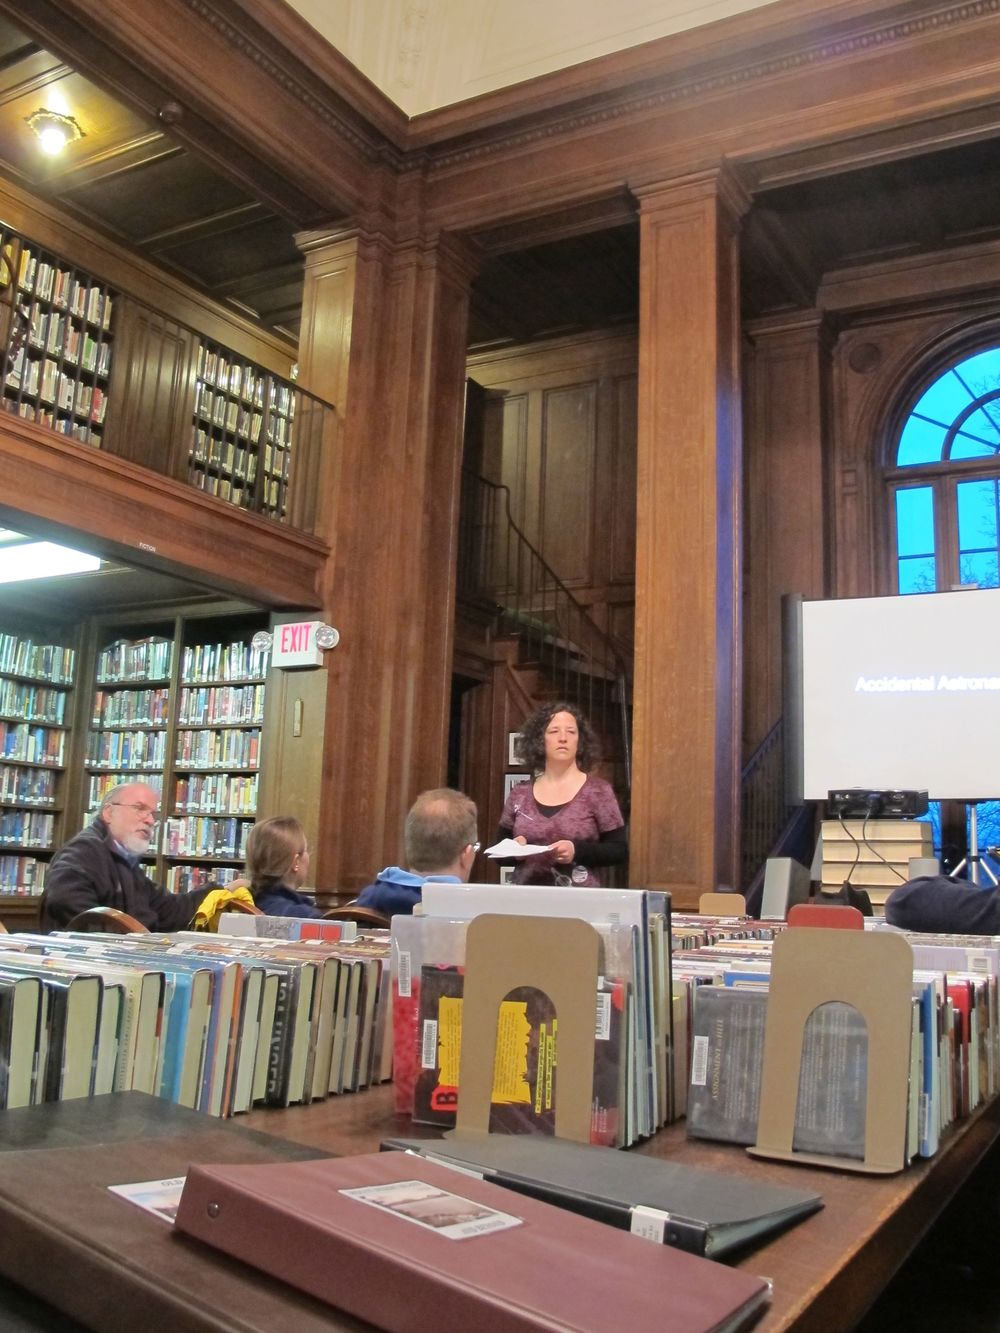 We went to the Jessup Library in Bar Harbor to hear Karen talk about how to become an astronaut.